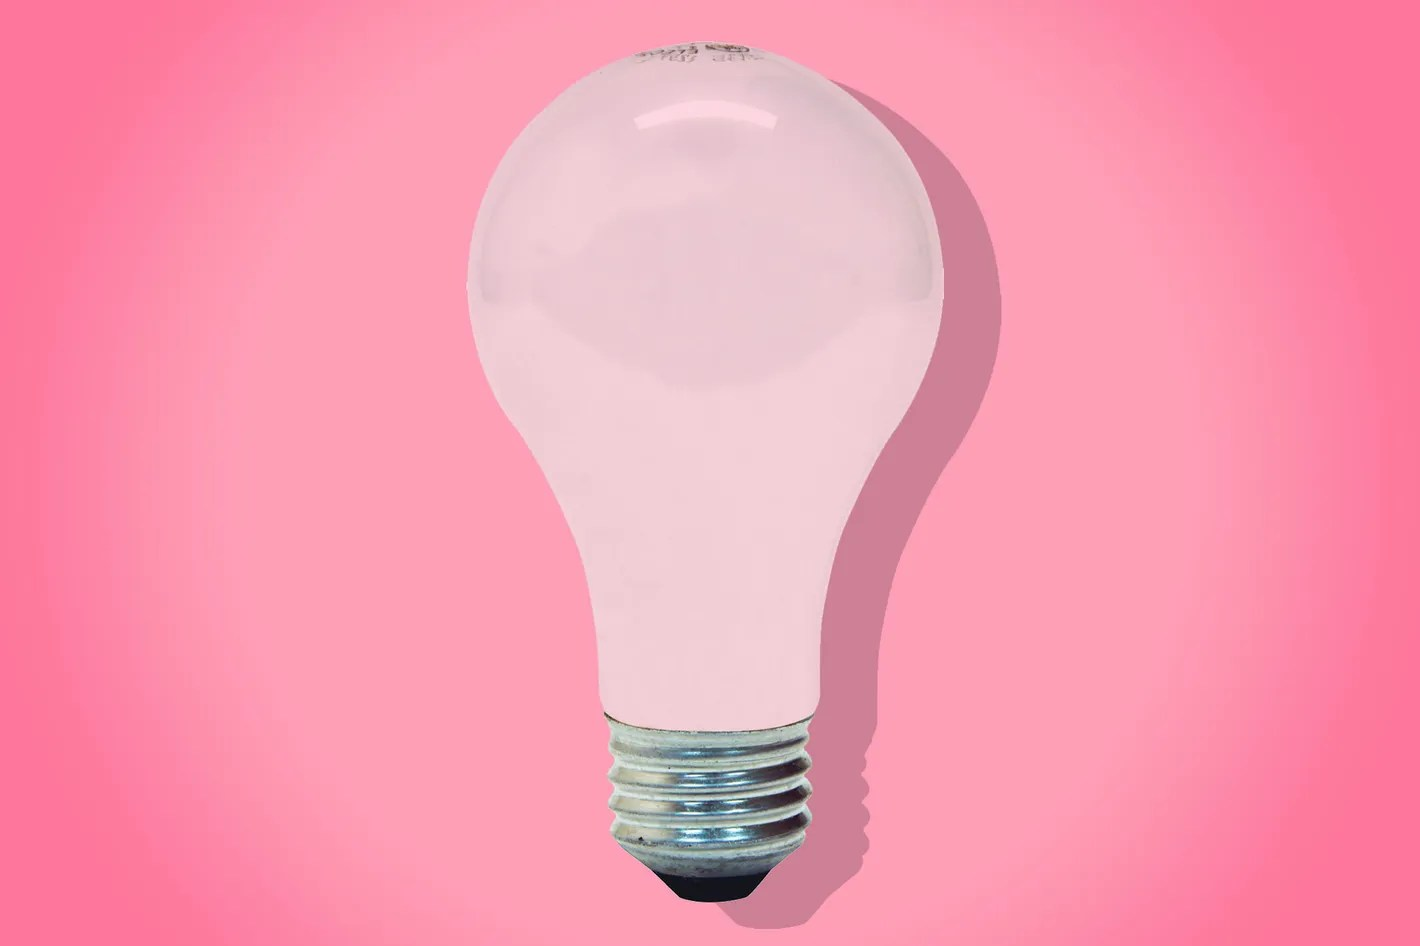 Buy Lightbulbs Pink Light Bulbs Are My Secret Apartment Decorating Tip